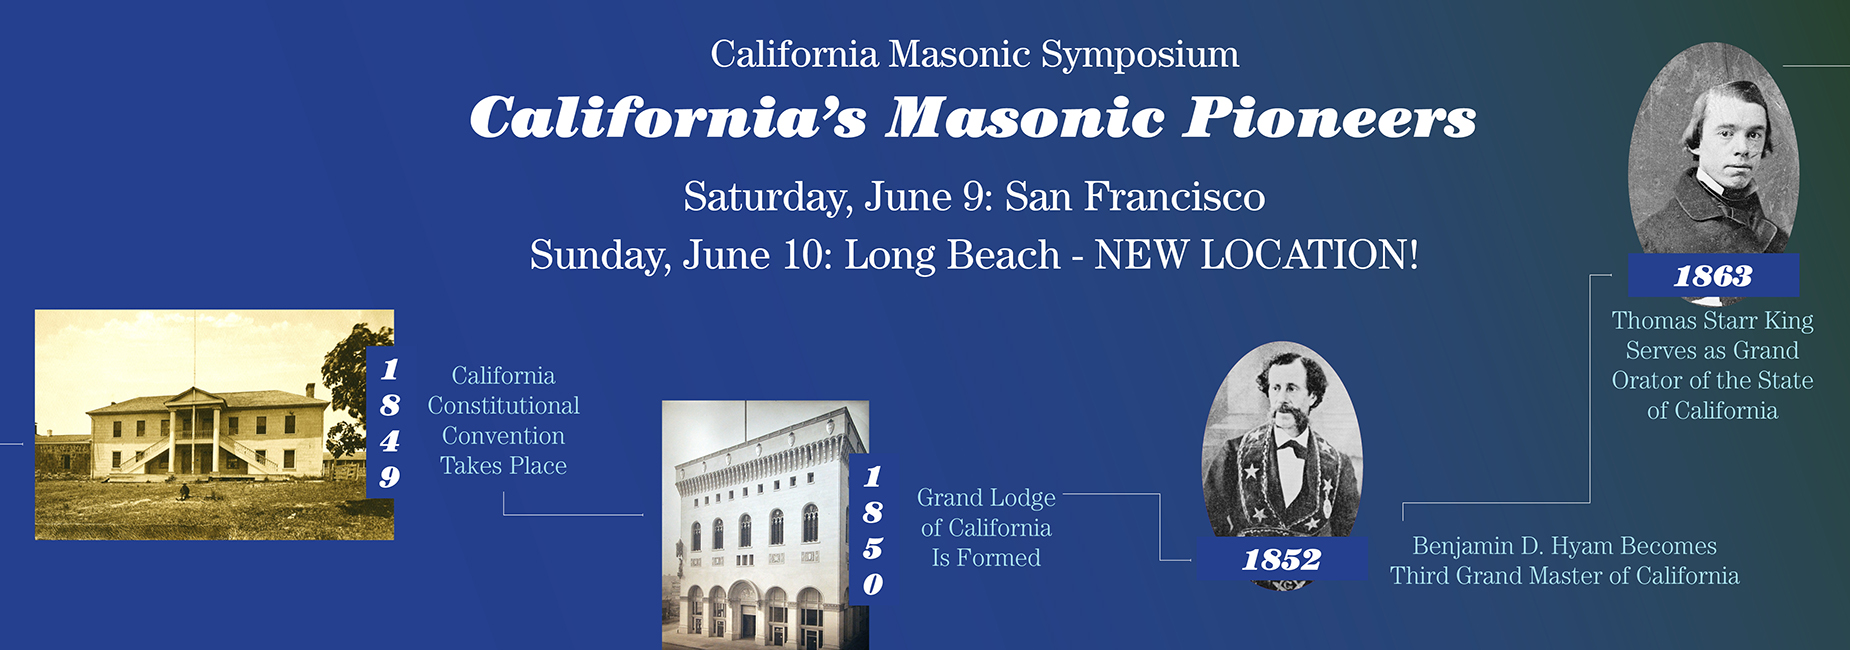 18th Annual California Masonic Symposium